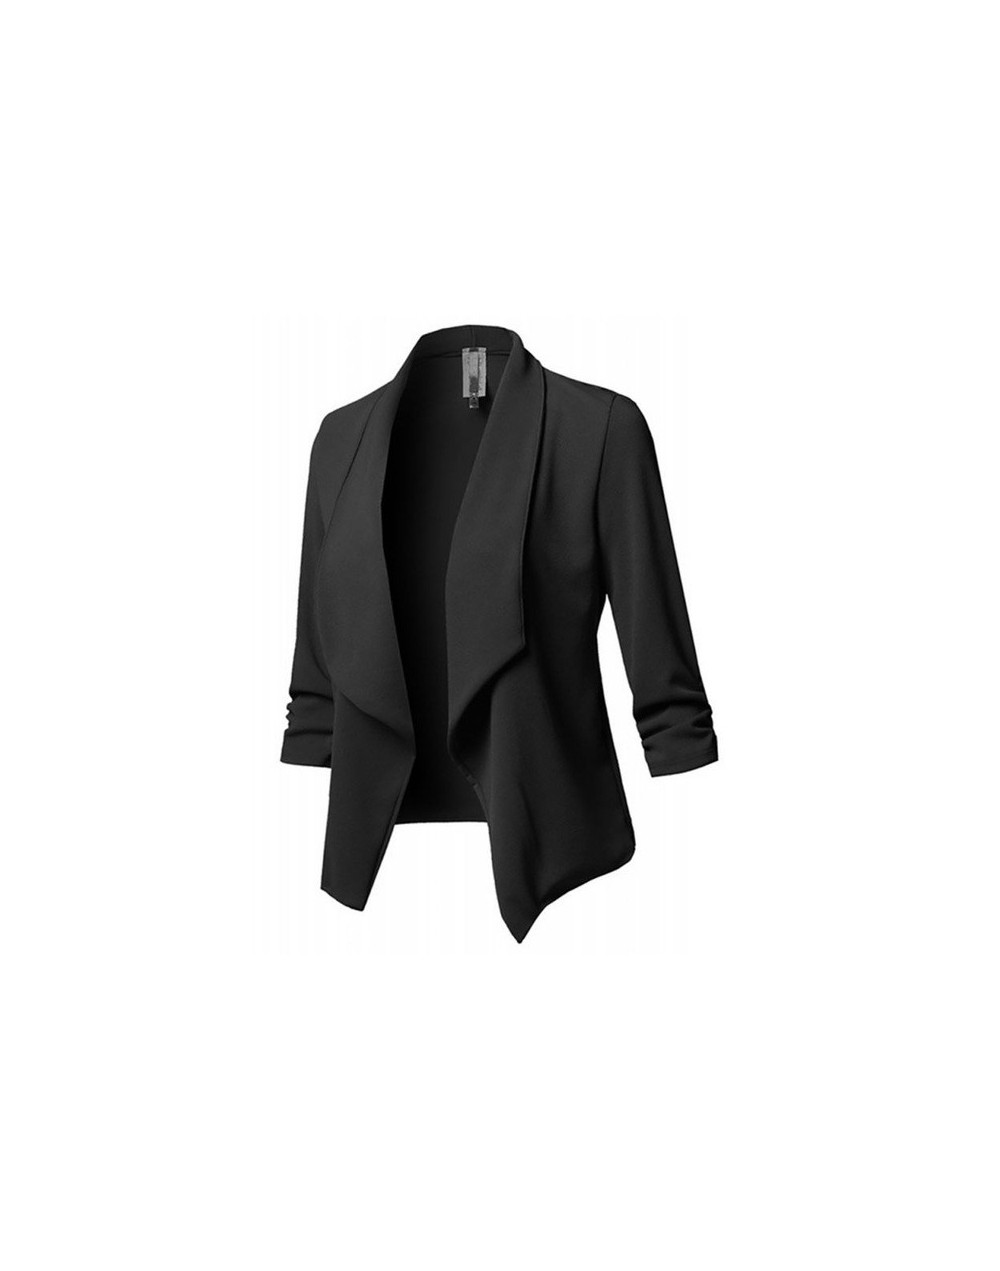 Women new Autumn Tops Slim Long Sleeves Pleated Blazers Tops Solid Color Casual Wild Small Blazers Plus Size L-4XL - Black -...